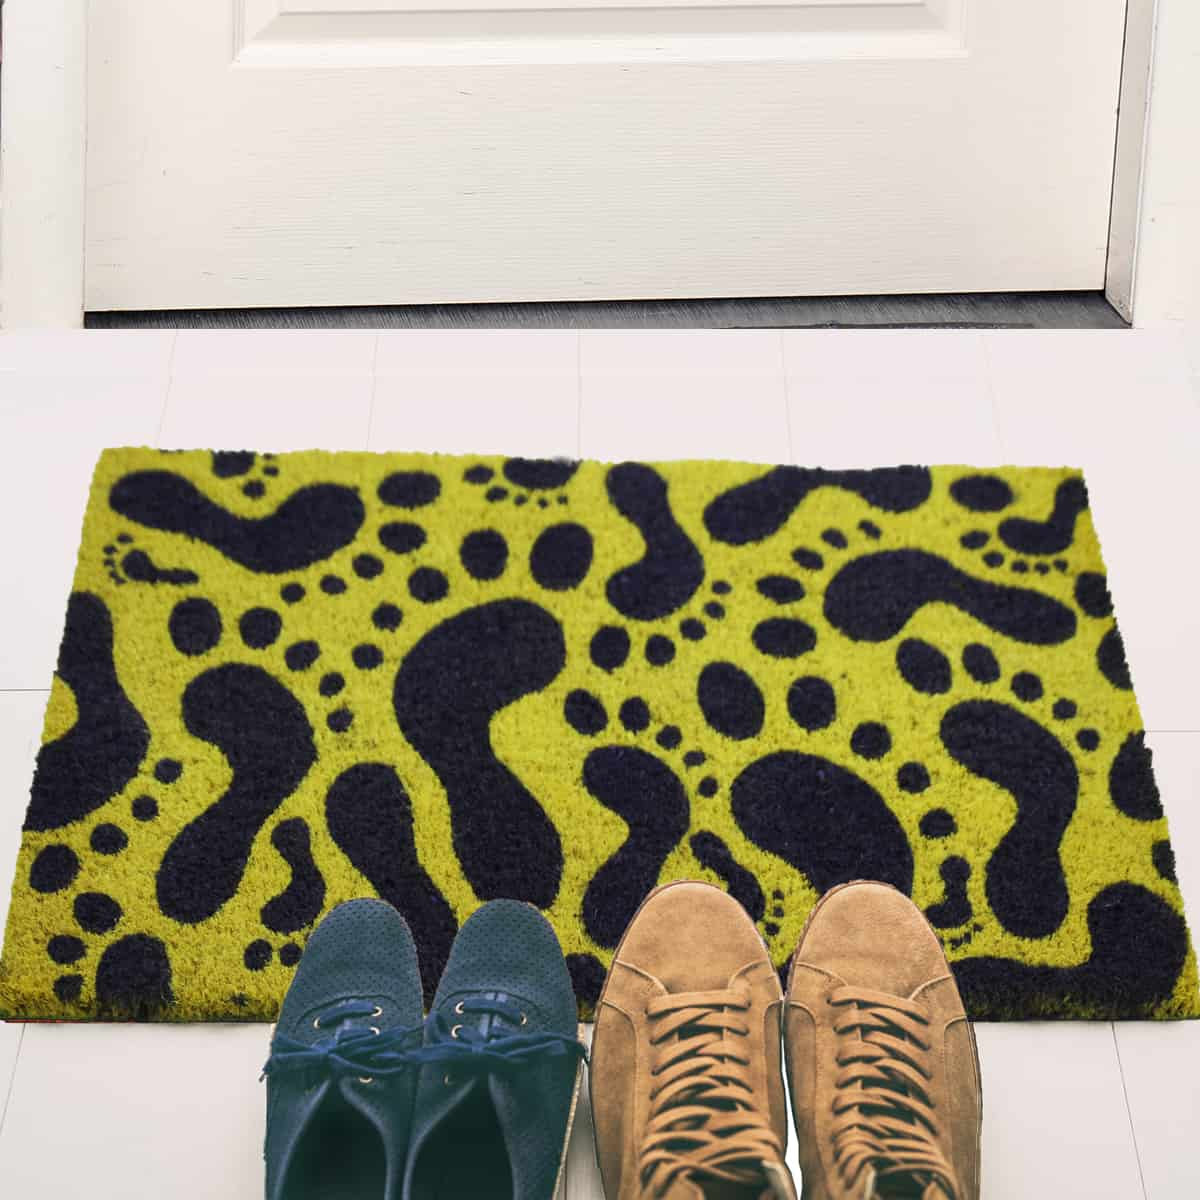 Sheltered Printed Front Door Mat Footprints Coir Coco Fibers Rug 24x16 Yellow and Black